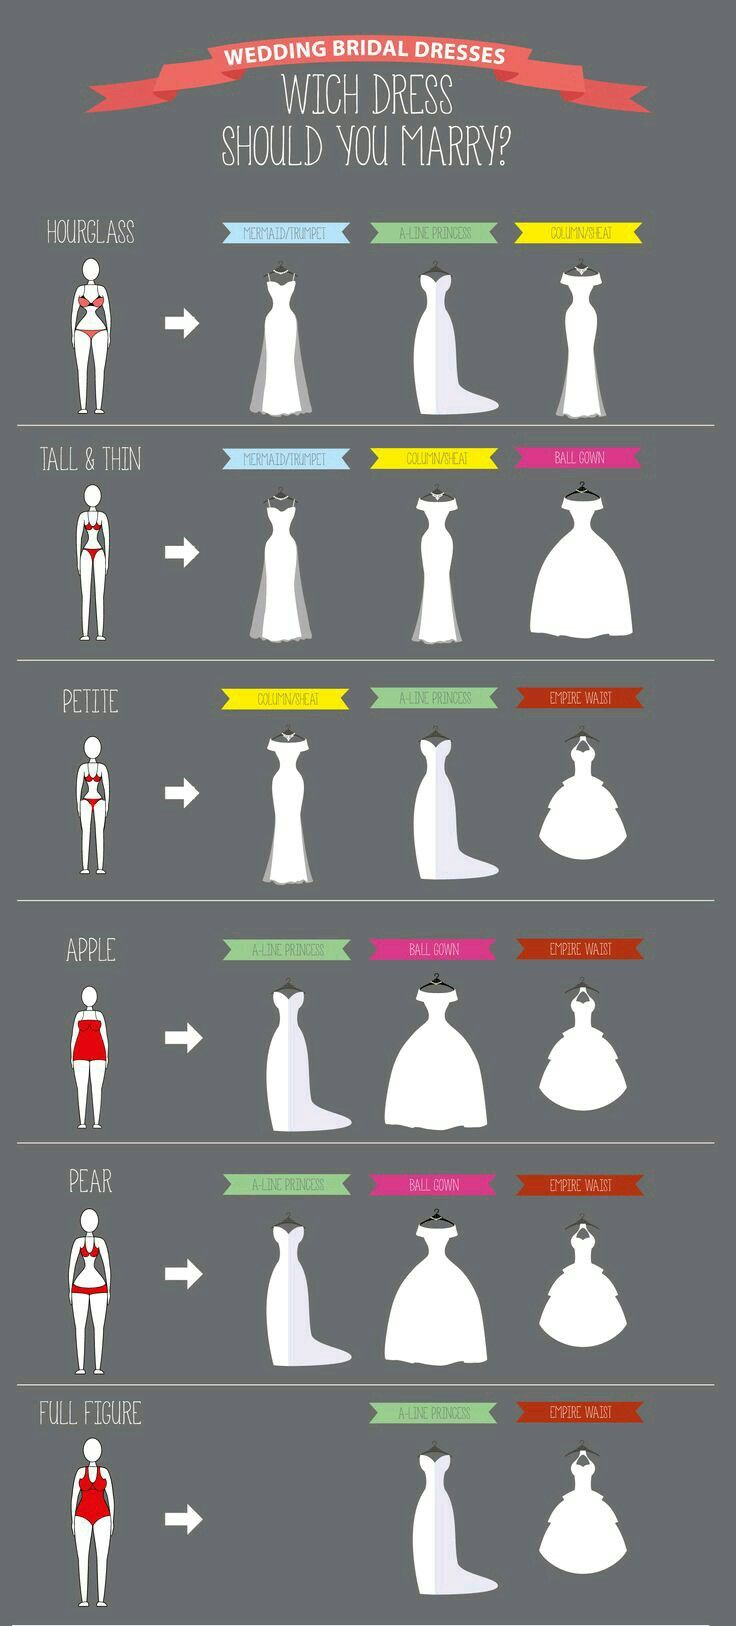 How To Choose Wedding Dress For Your Body Type Dress Body Type Fashion Infographic Wedding Dress Guide